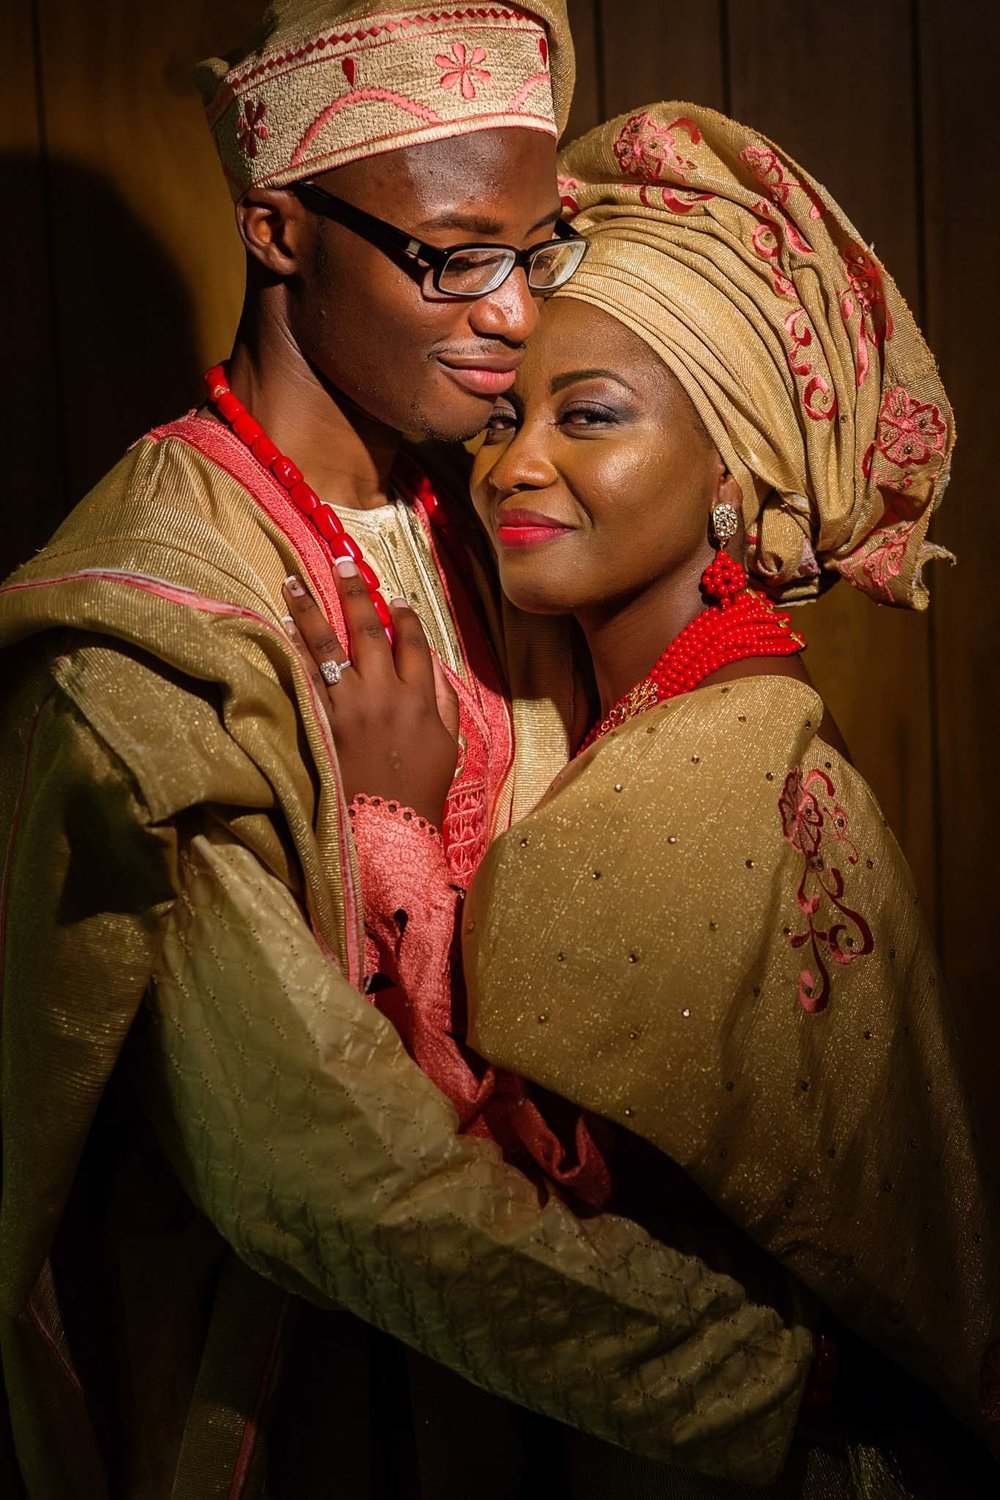 For-FacebookAndWebsites-Yewande-Lolu-Traditional-Wedding-Winston-Salem-Clemmons-NC-Yoruba-Nigerian-Kumolu-Studios-582.jpg